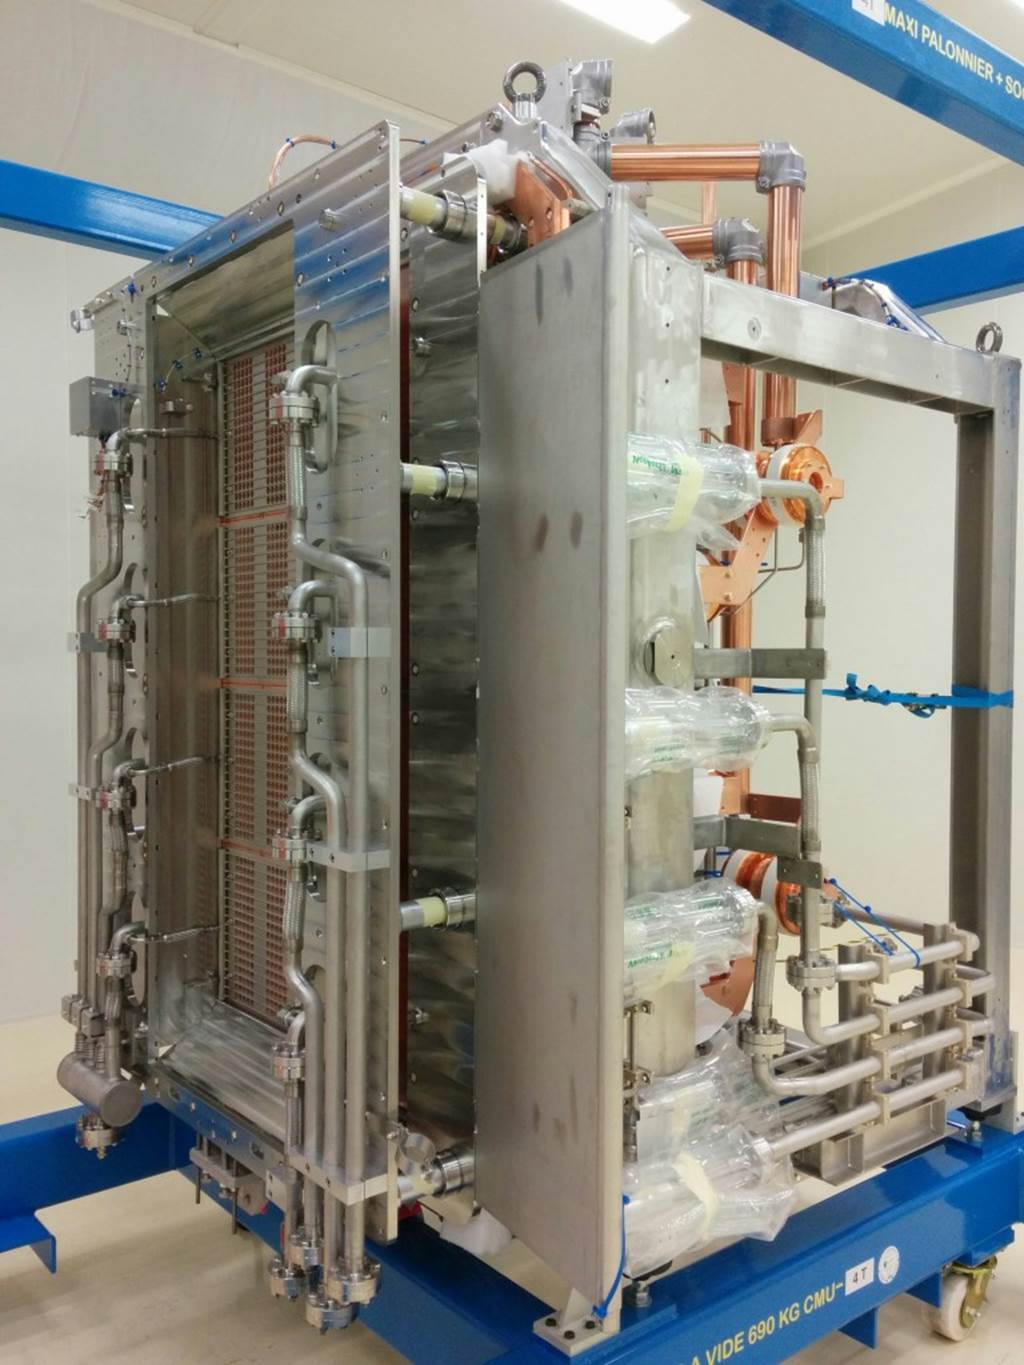 Manufacturing Underway Sumitomo Electric Wiring Systems Europe Ltd Negative Ion Source Built In